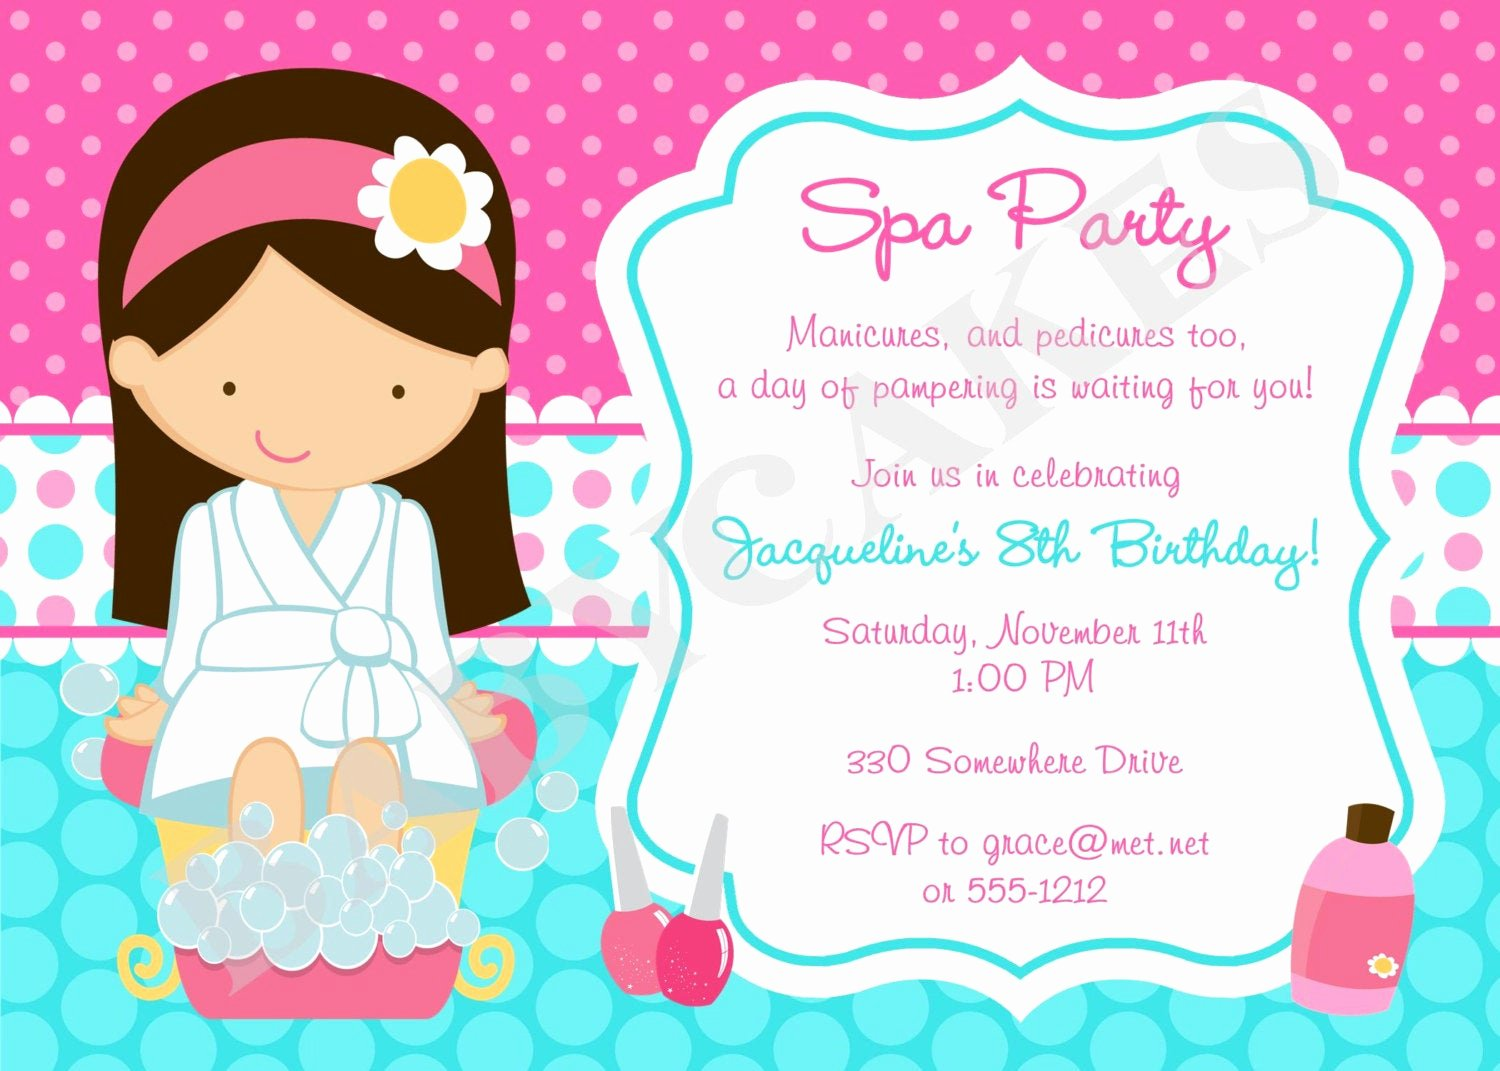 Free Spa Party Invitations Inspirational Spa Party Invitation Spa Birthday Party Spa Invitation